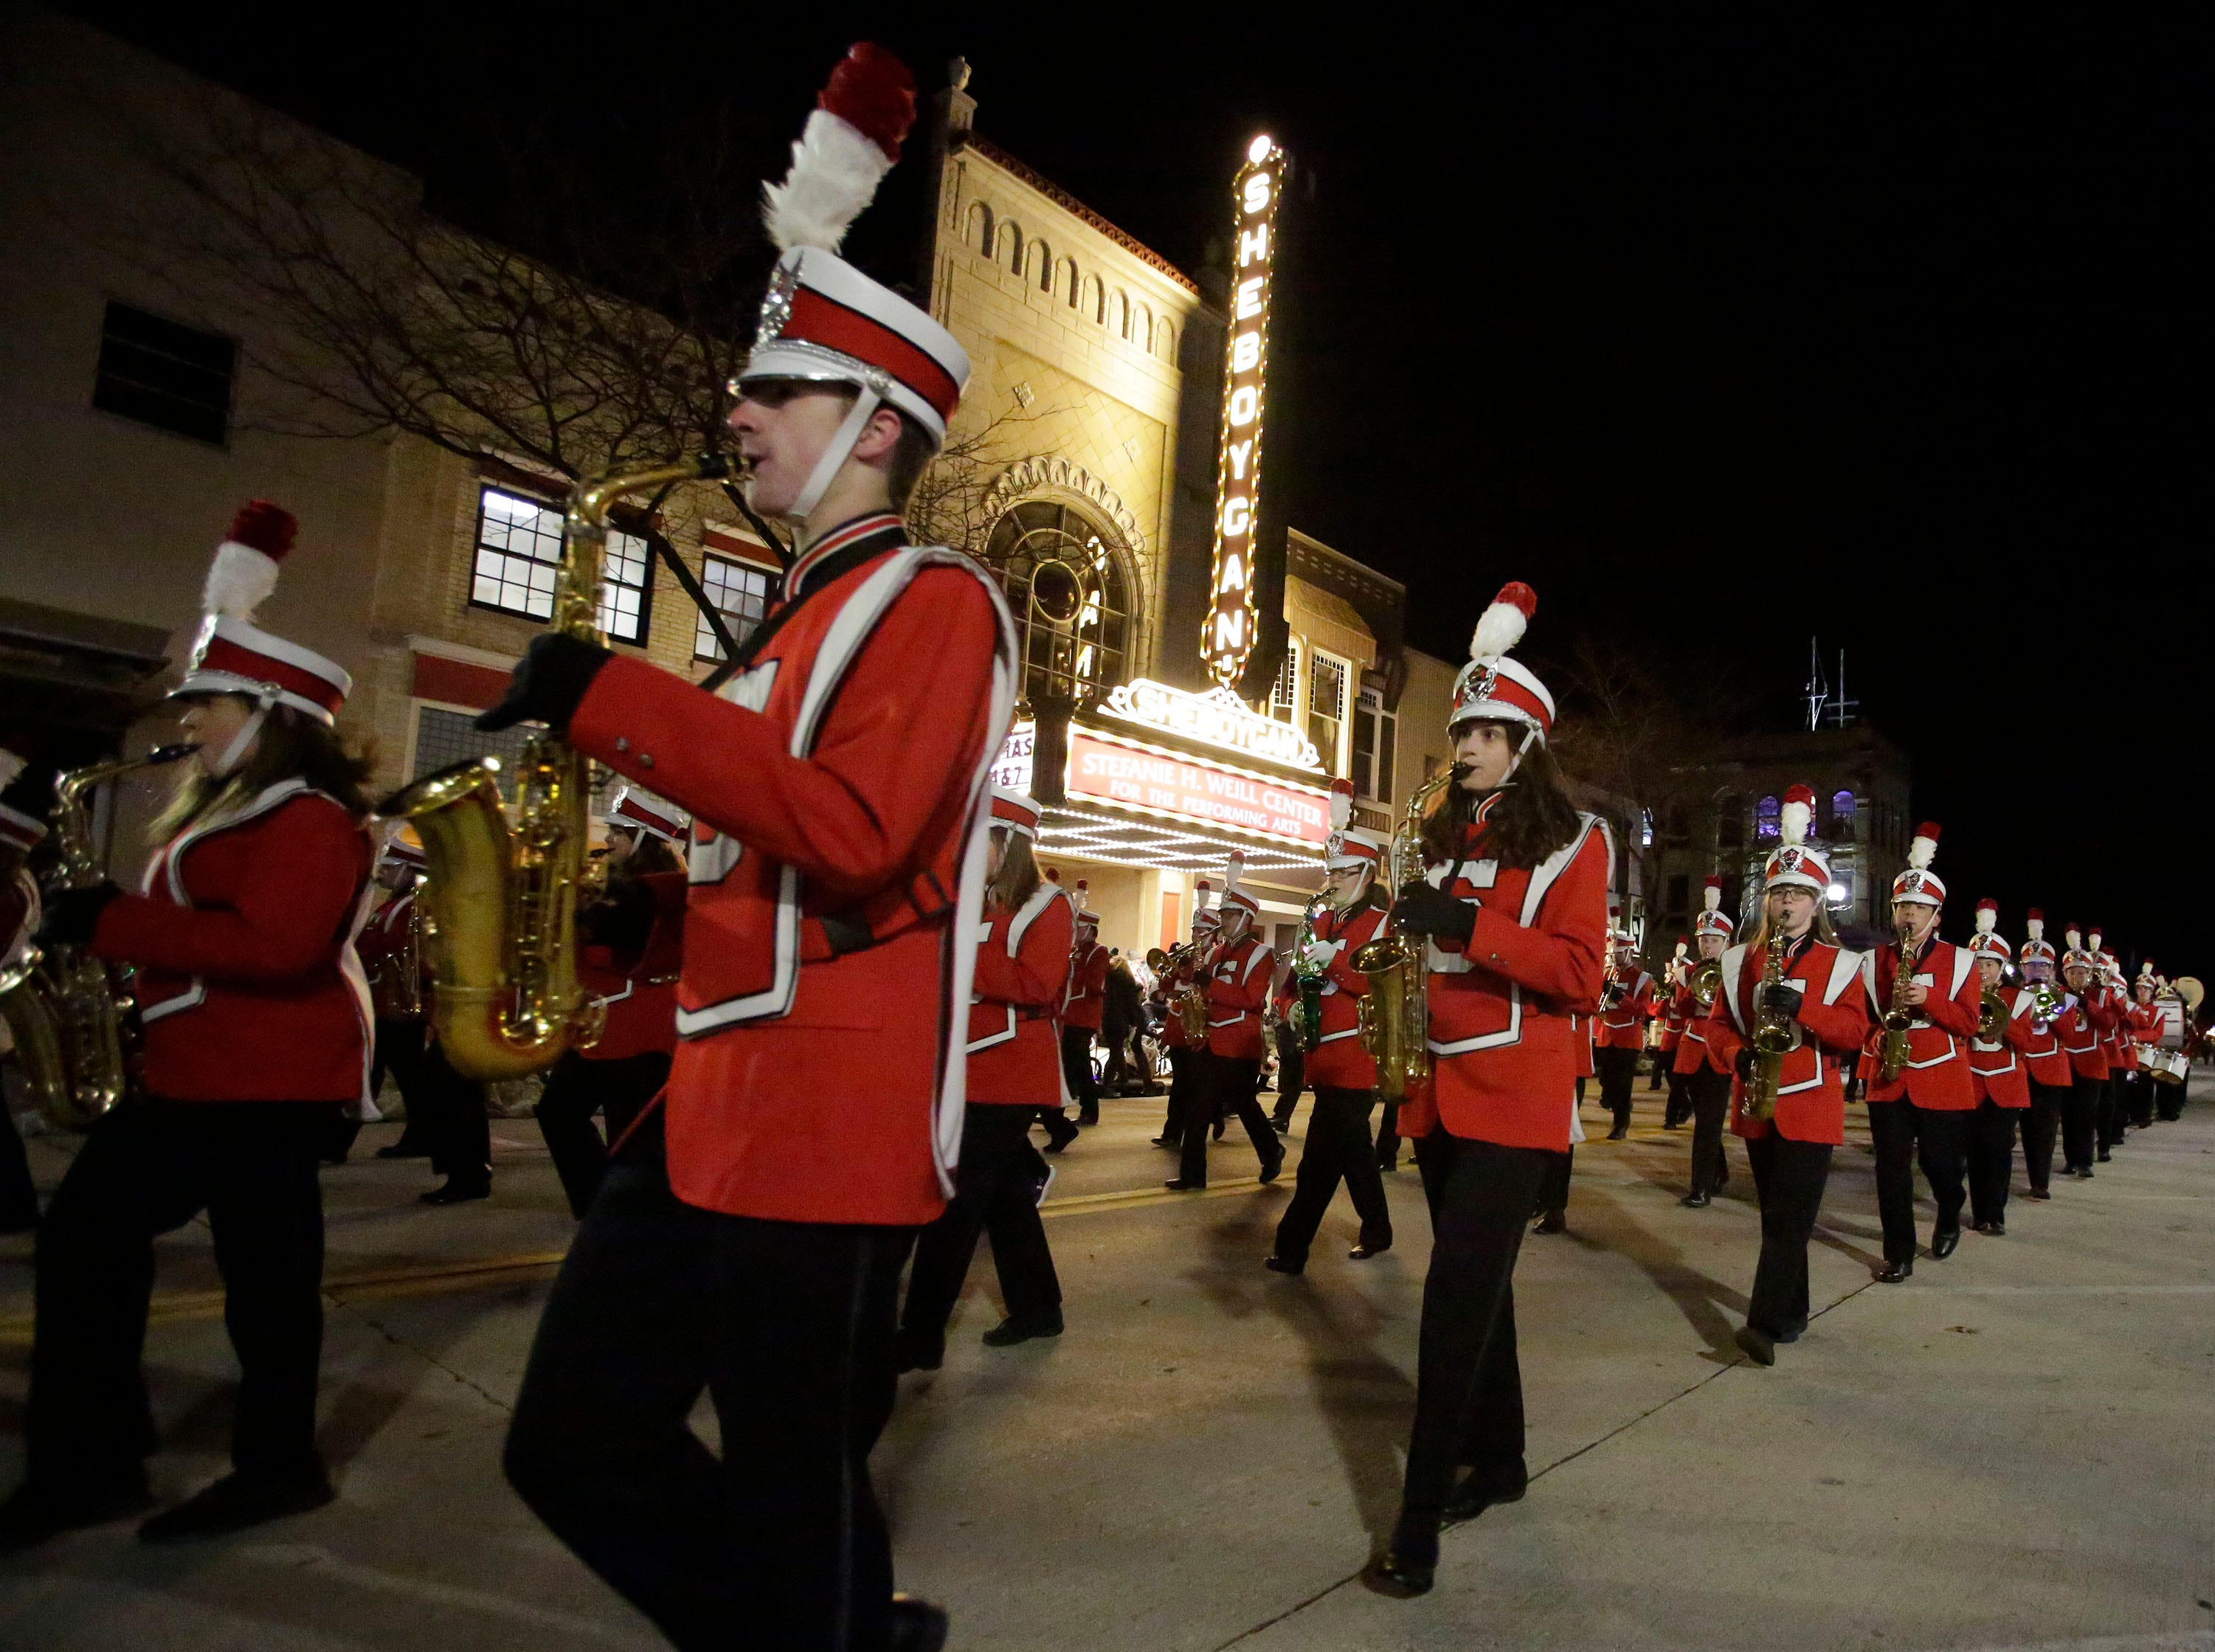 Sheboygan South's marching band performs at the 26th Annual Jaycees Holiday Parade, Sunday, November 25, 2018 in Sheboygan, Wis.